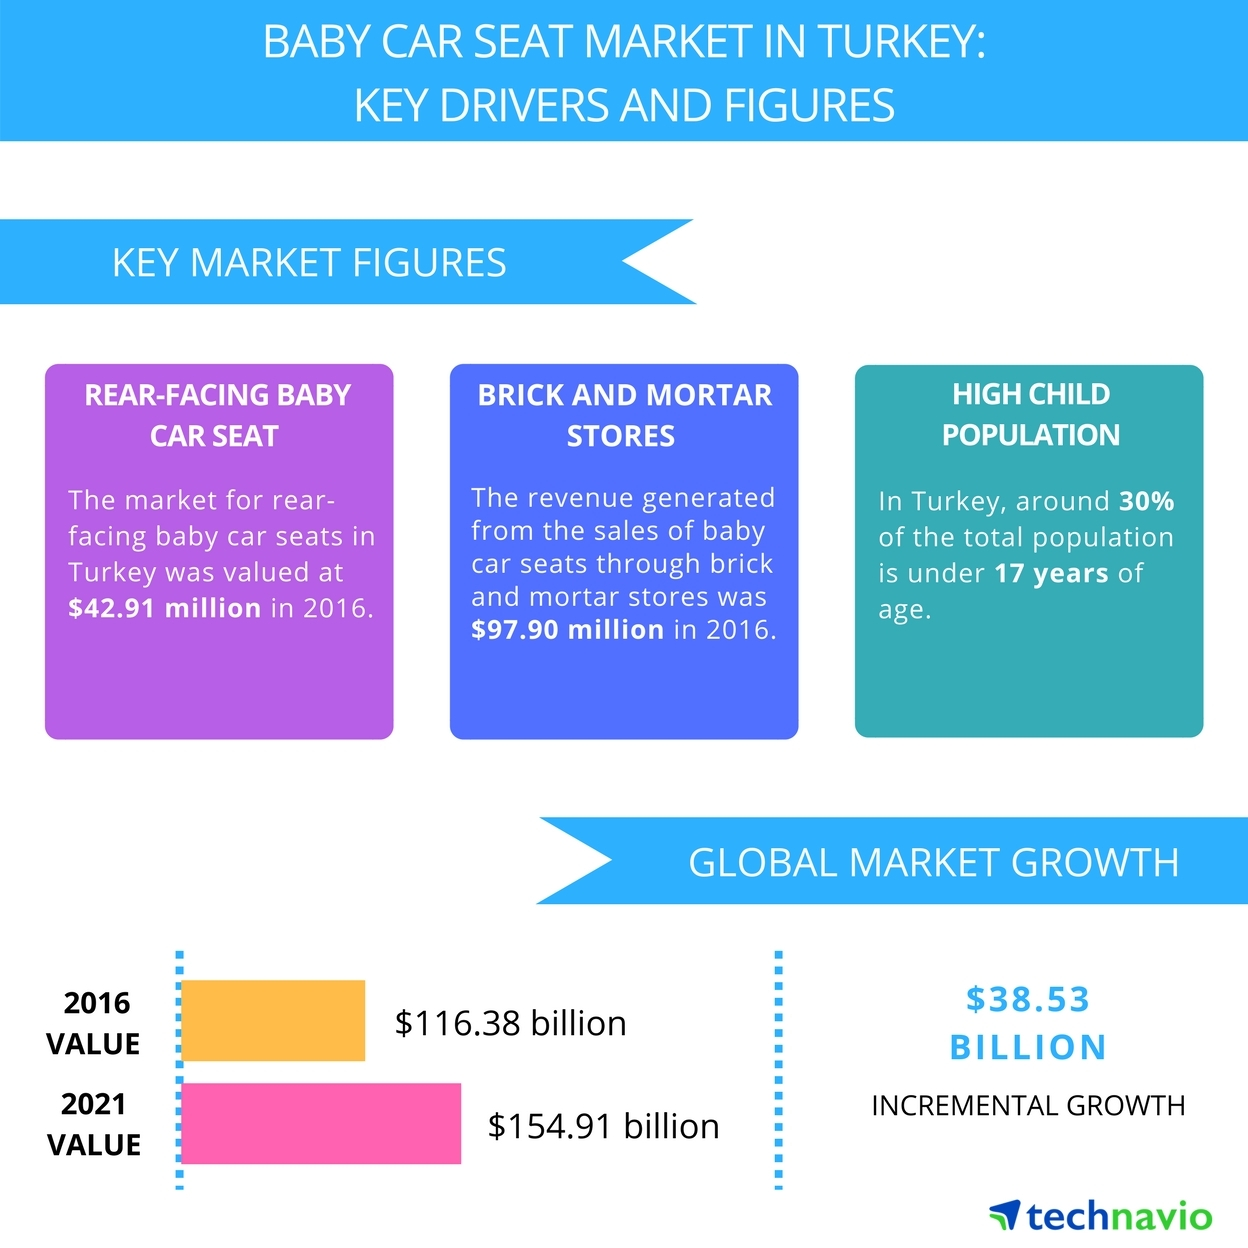 Baby Car Seat Market in Turkey 2017-2021: Opportunities and Drivers